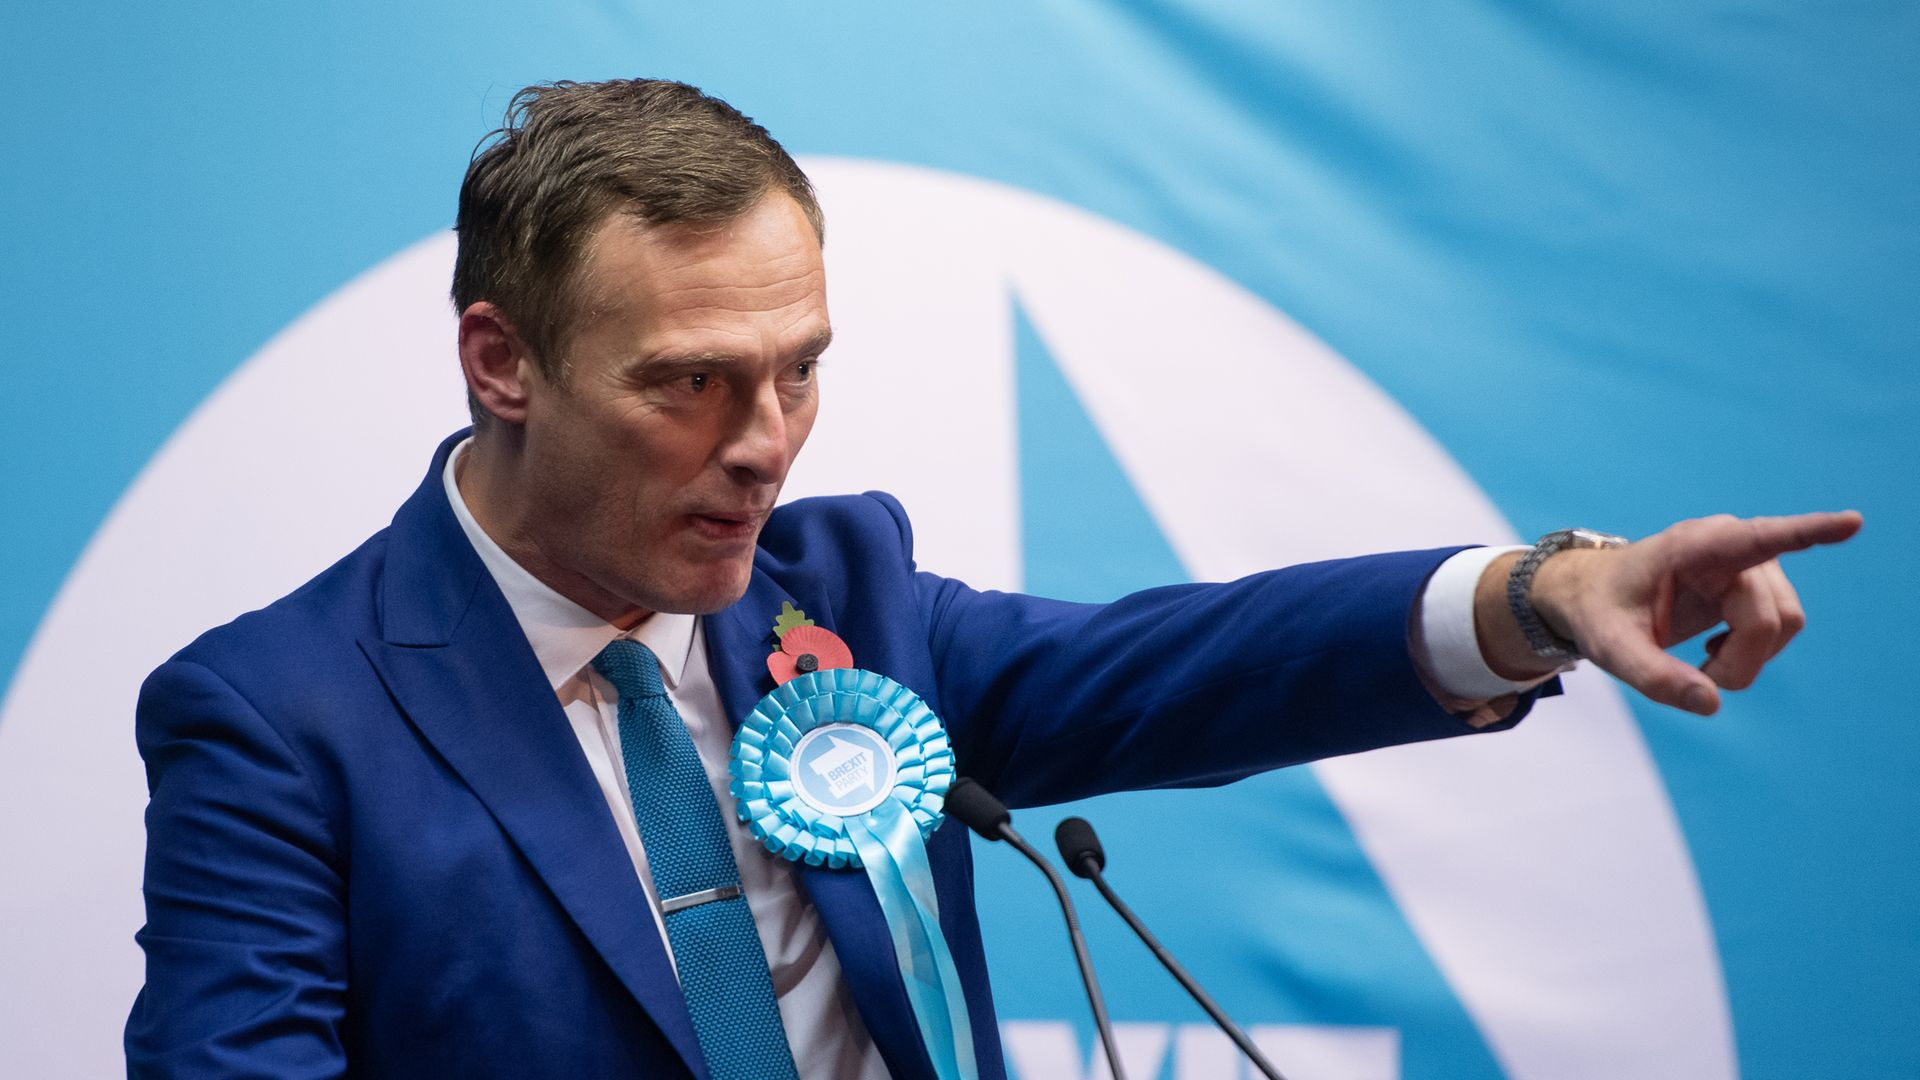 Brexit Party Prospective Parliamentary Candidate for Ashfield Martin Daubney during a rally at Bentinck Colliery Miners Welfare Social Club in Nottinghamshire. - Credit: PA